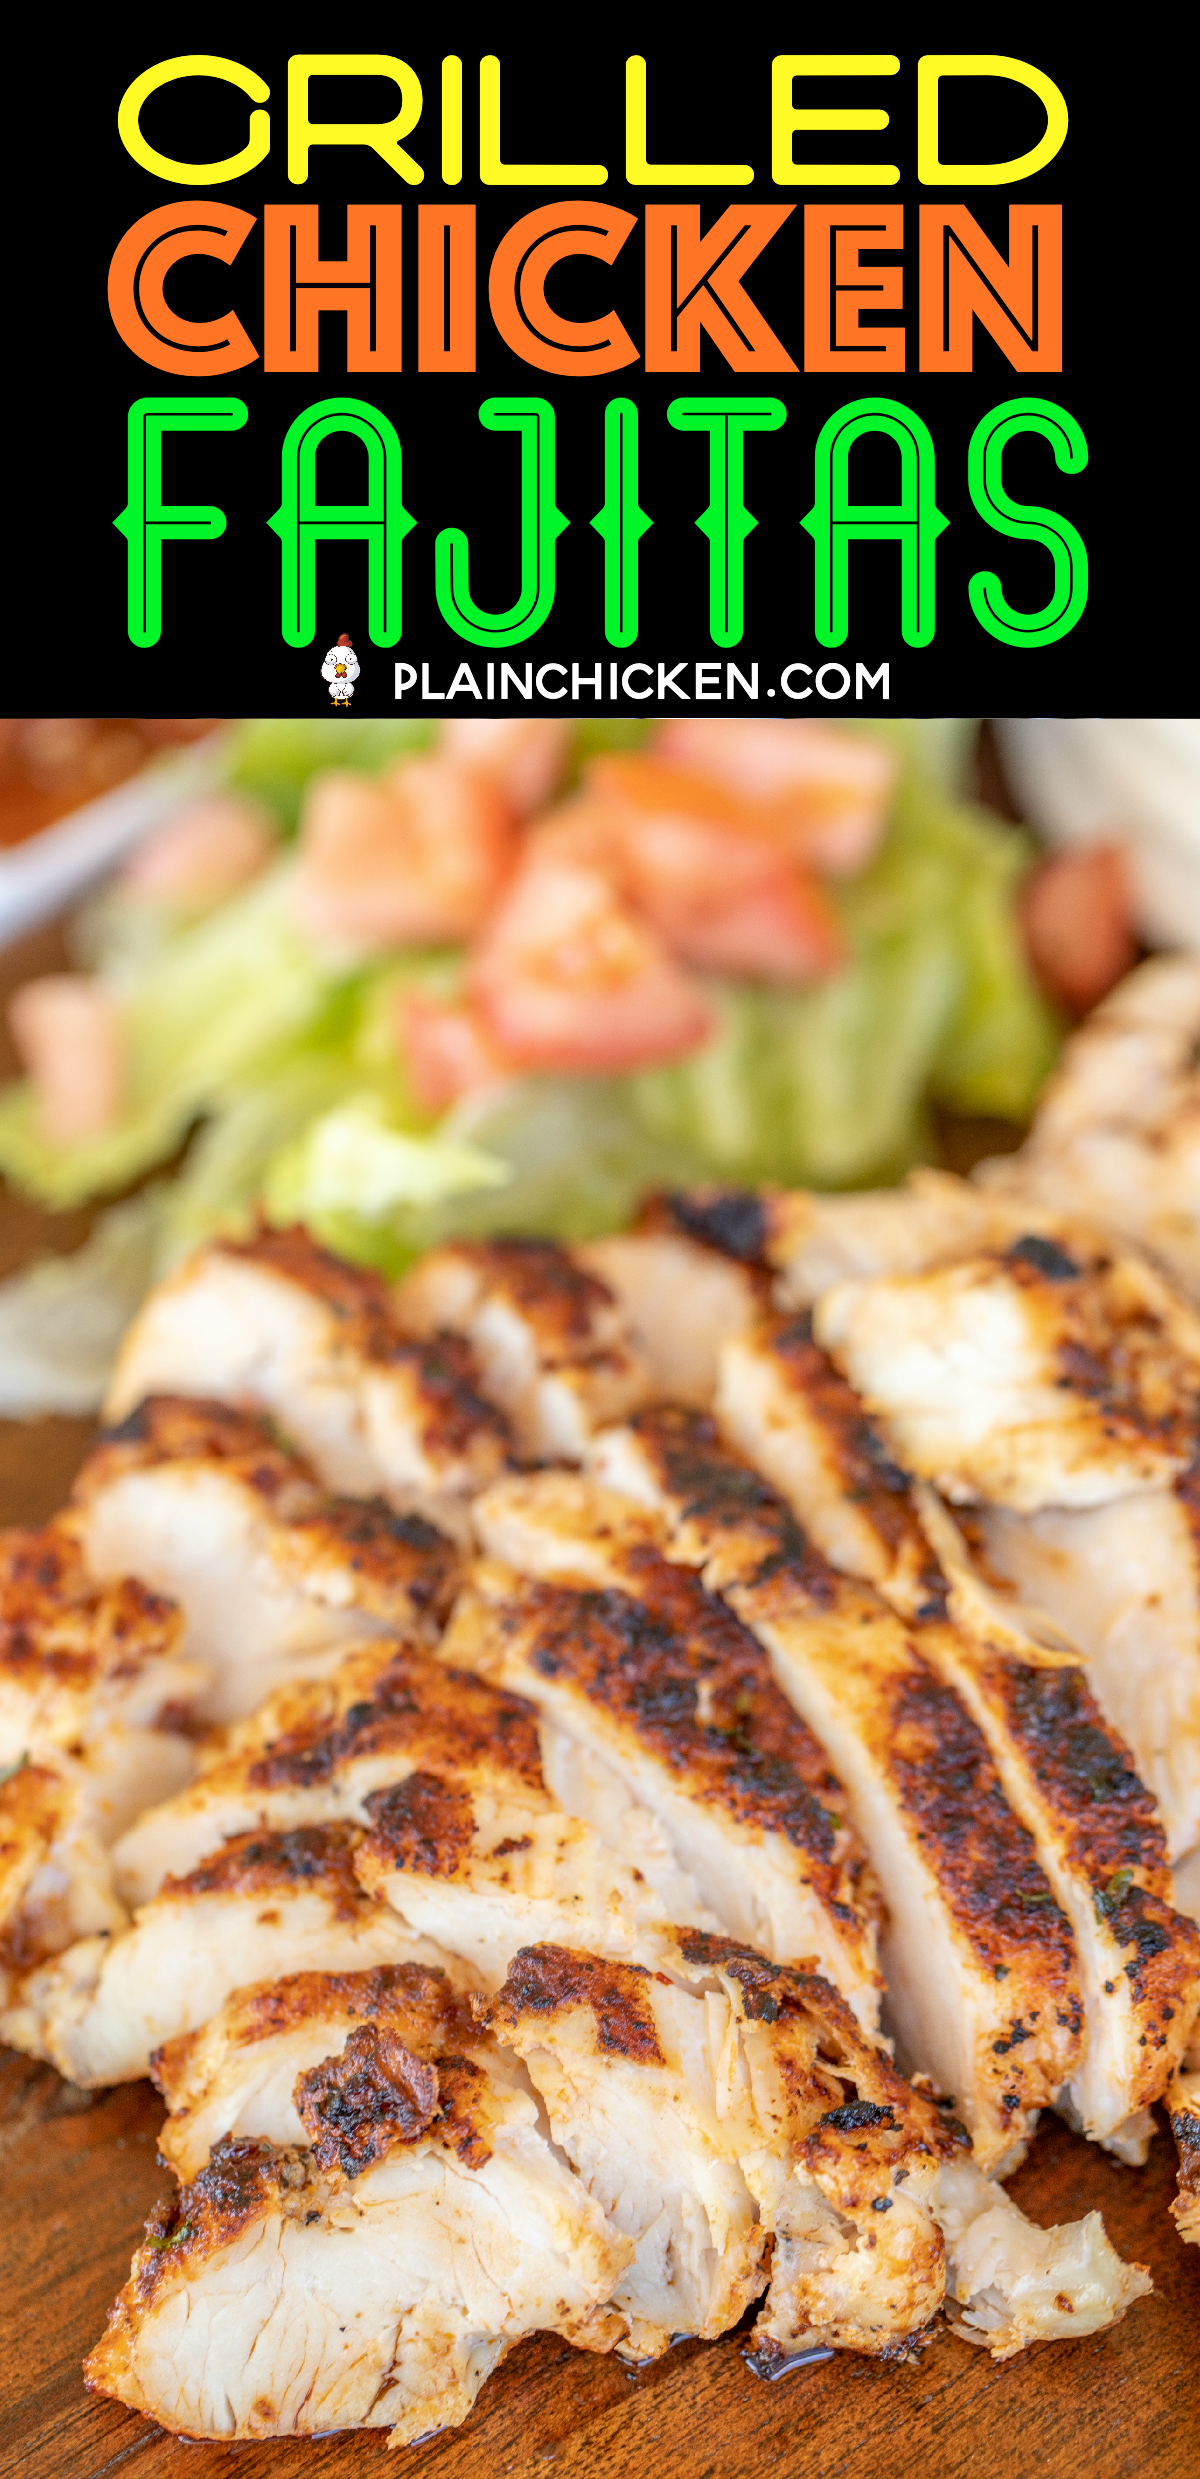 Grilled Chicken Fajitas - Plain Chicken